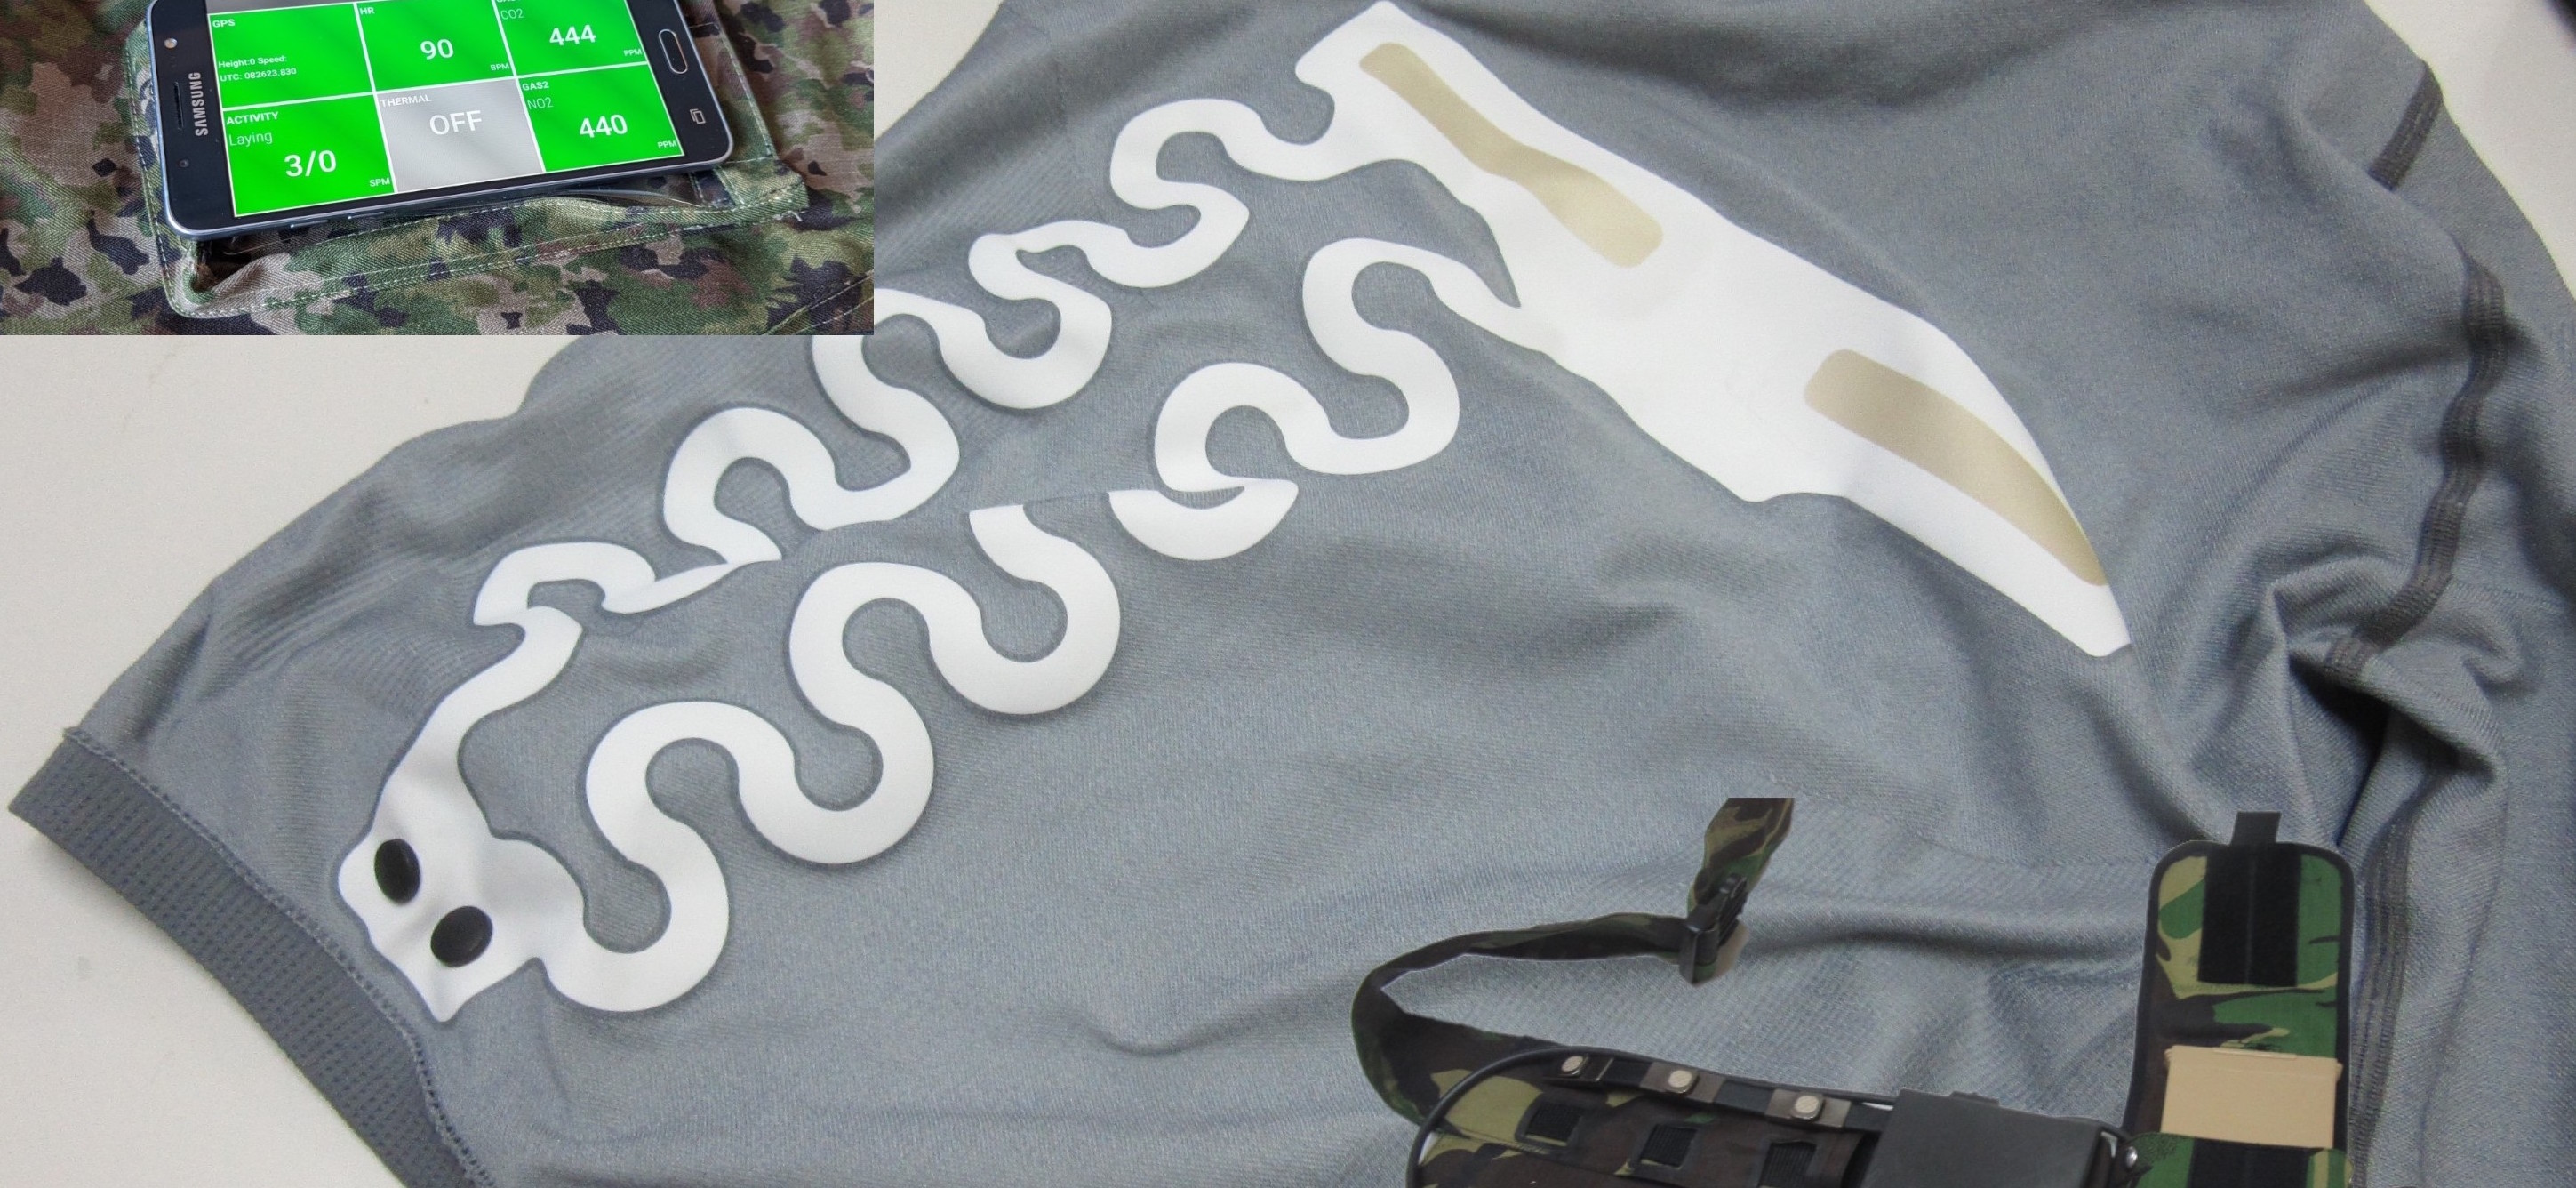 EDA project aims for multifunctional smart textiles for defence